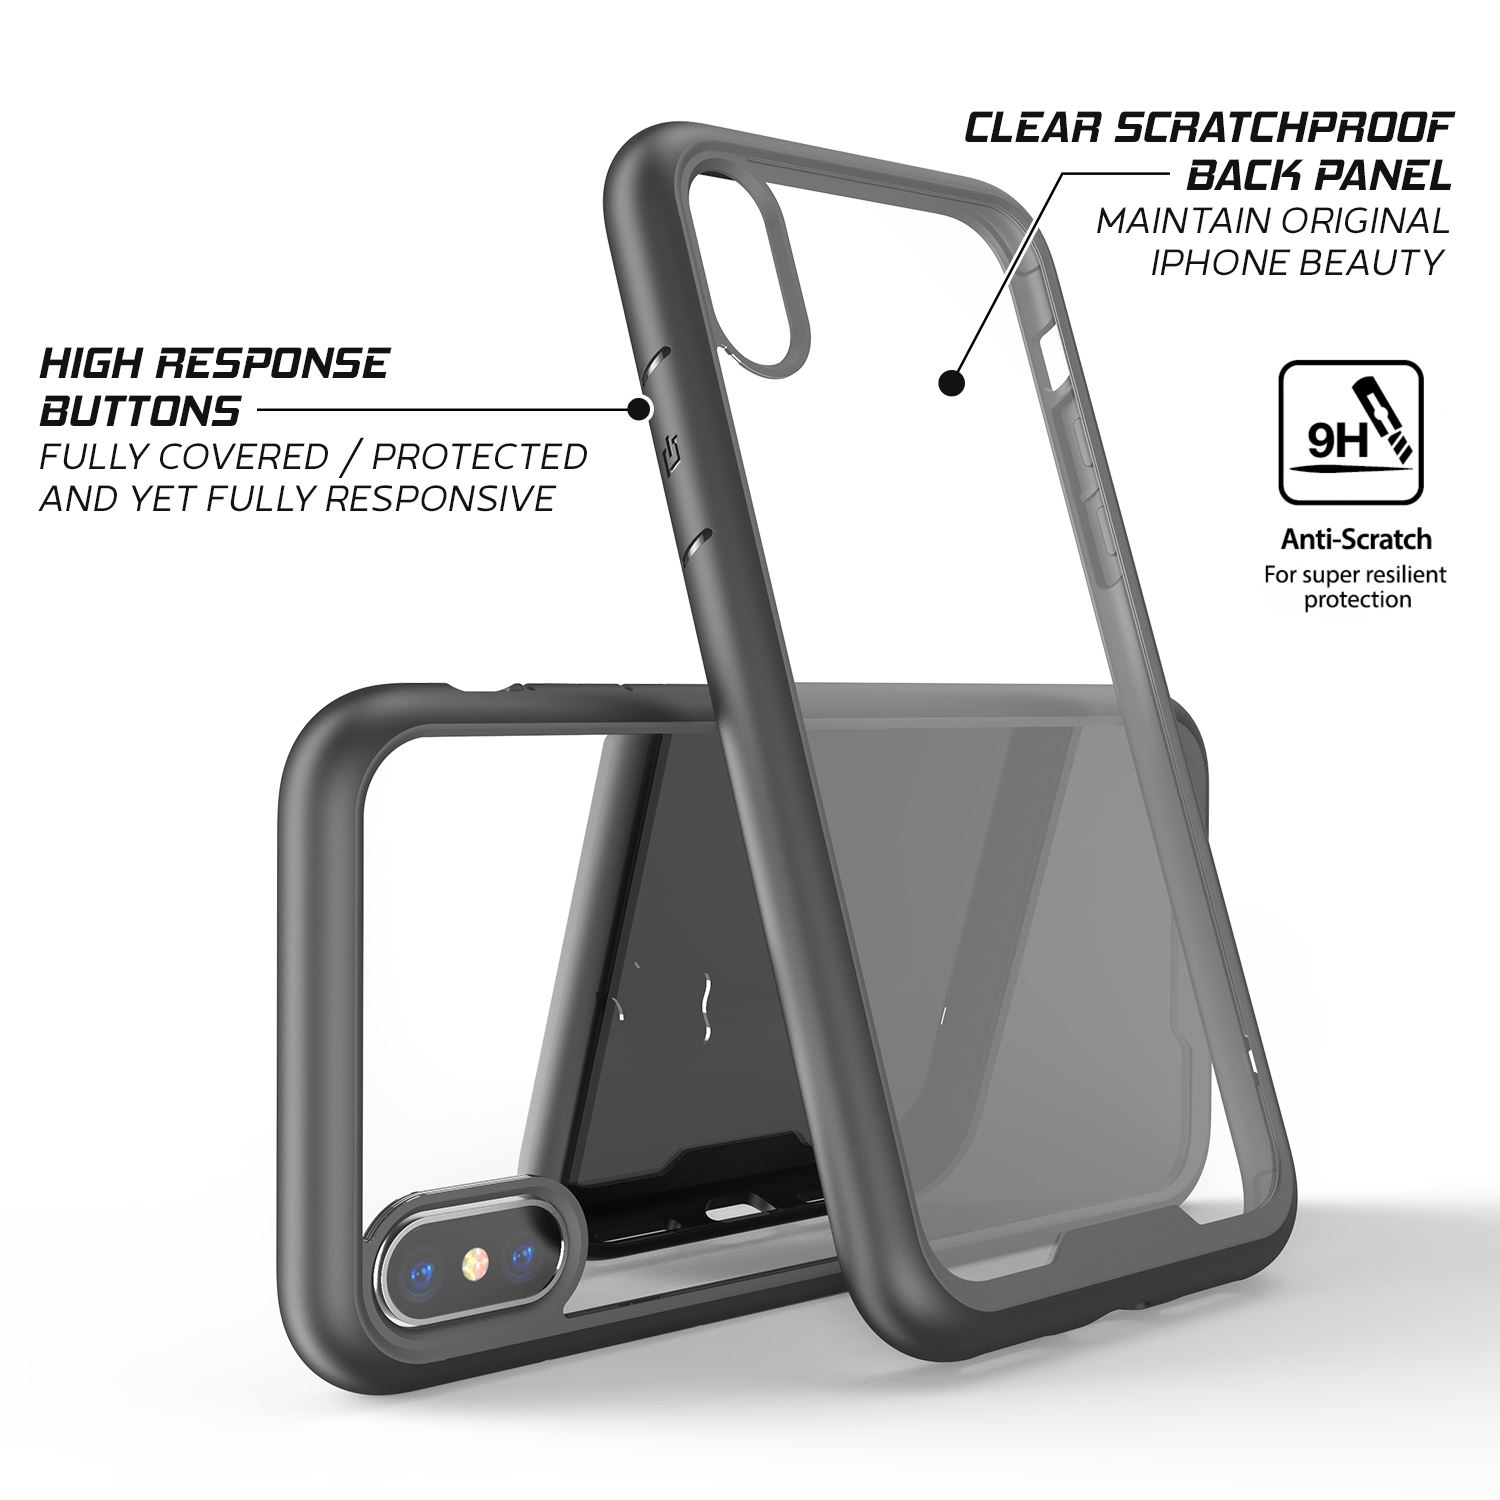 thumbnail 31 - For Apple iPhone XR Xs Max X 8 7 Plus 6 Se 2020 Case Cover Clear Shockproof Thin